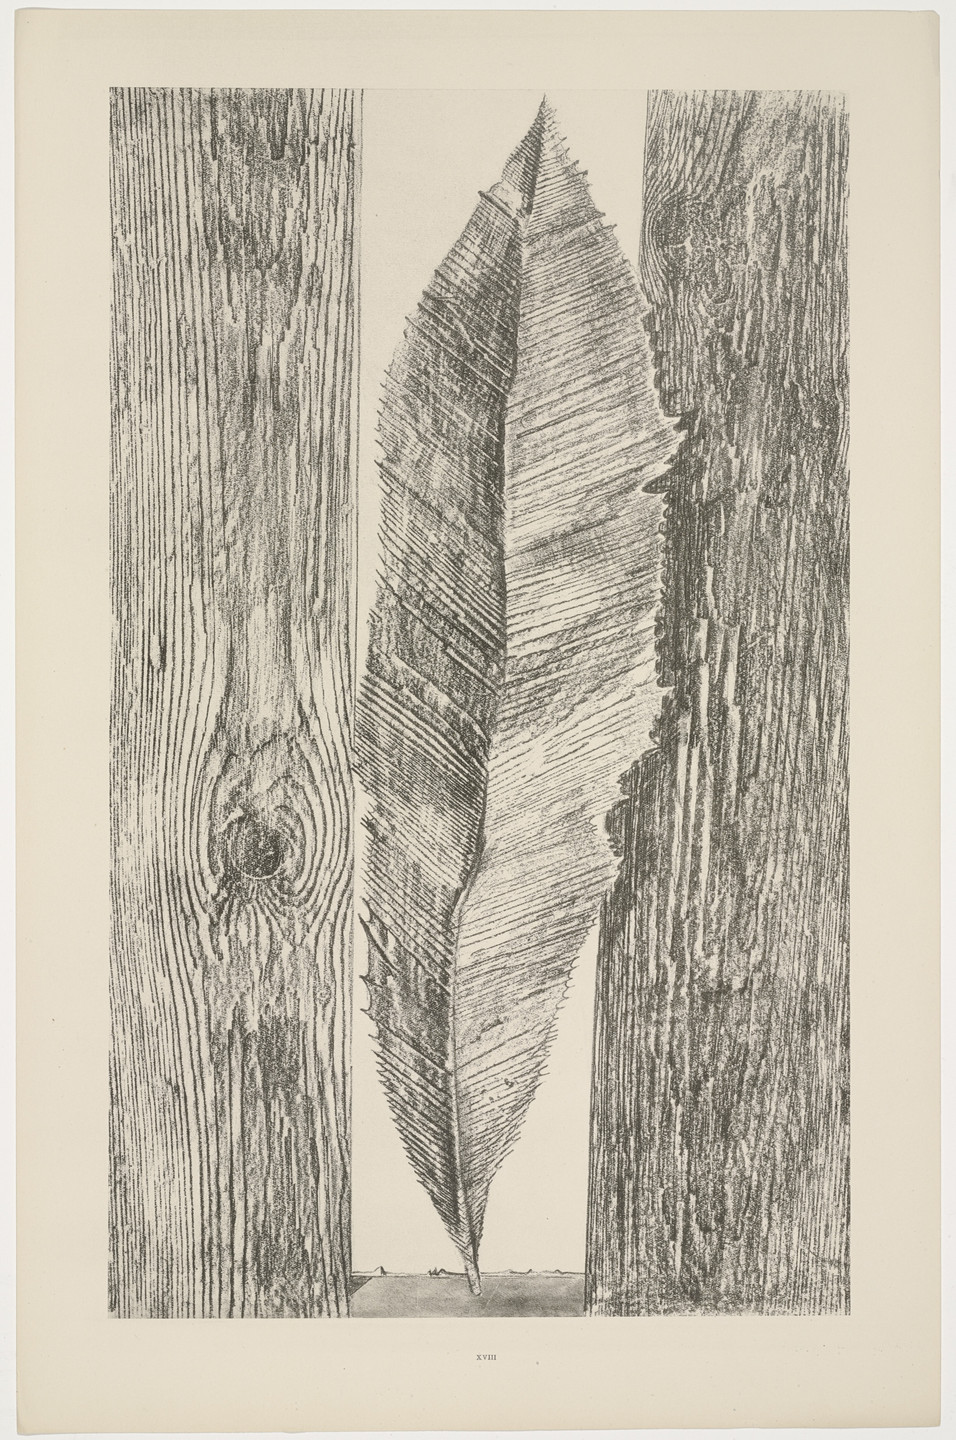 Max Ernst. The Habit of Leaves (Les Moeurs des feuilles) from Natural History (Histoire naturelle). c. 1925, published 1926